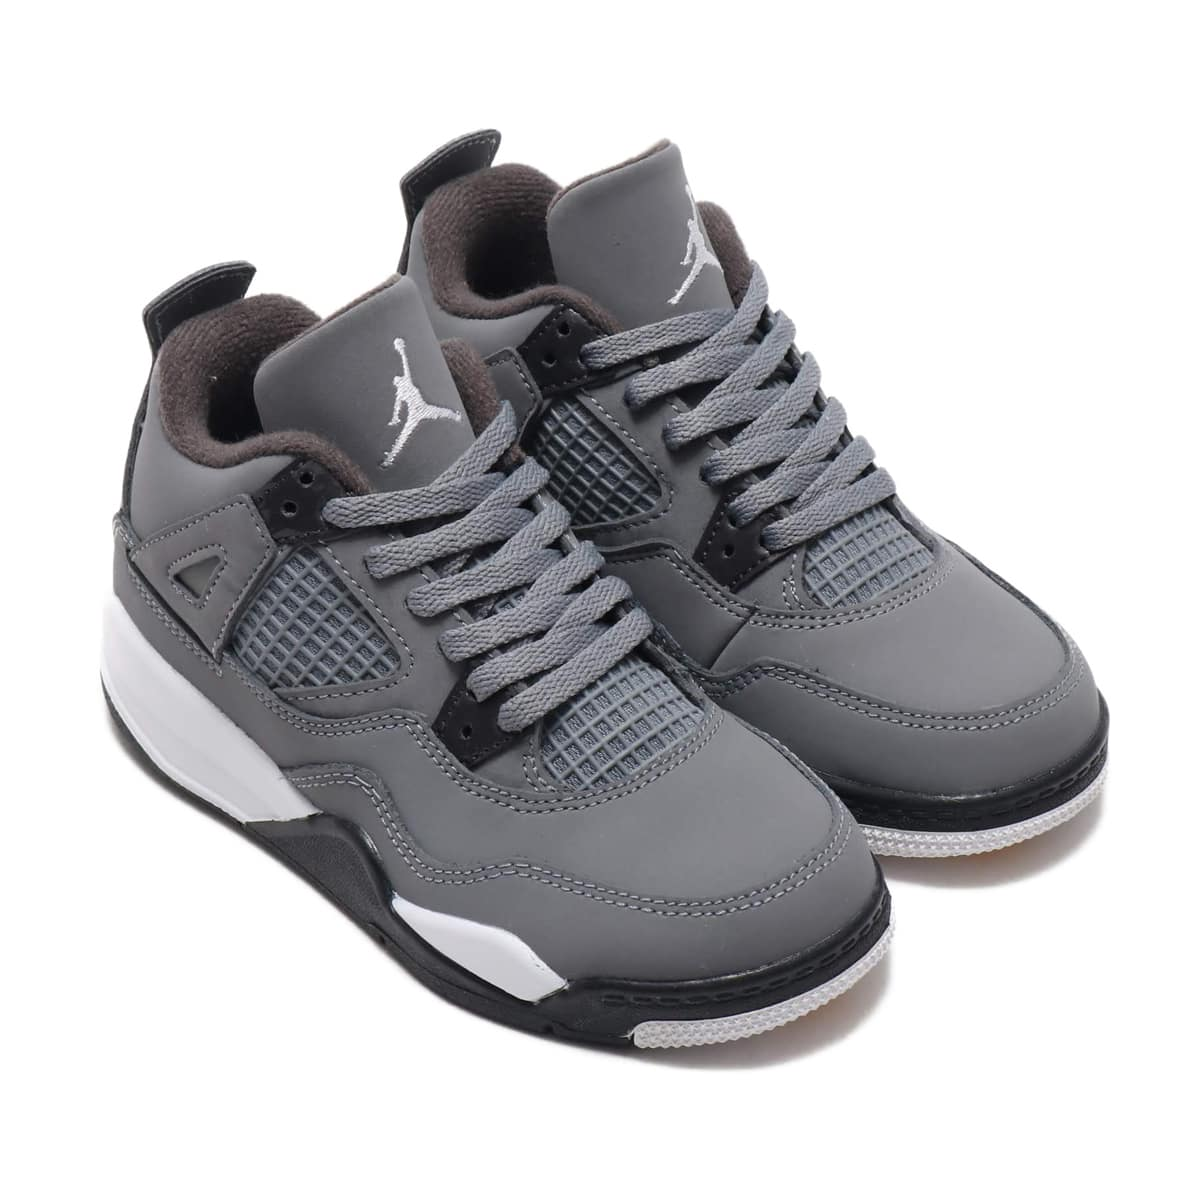 NIKE JORDAN 4 RETRO PS COOL GREY/CHROME-DARK CHARCOAL 19FA-S_photo_large